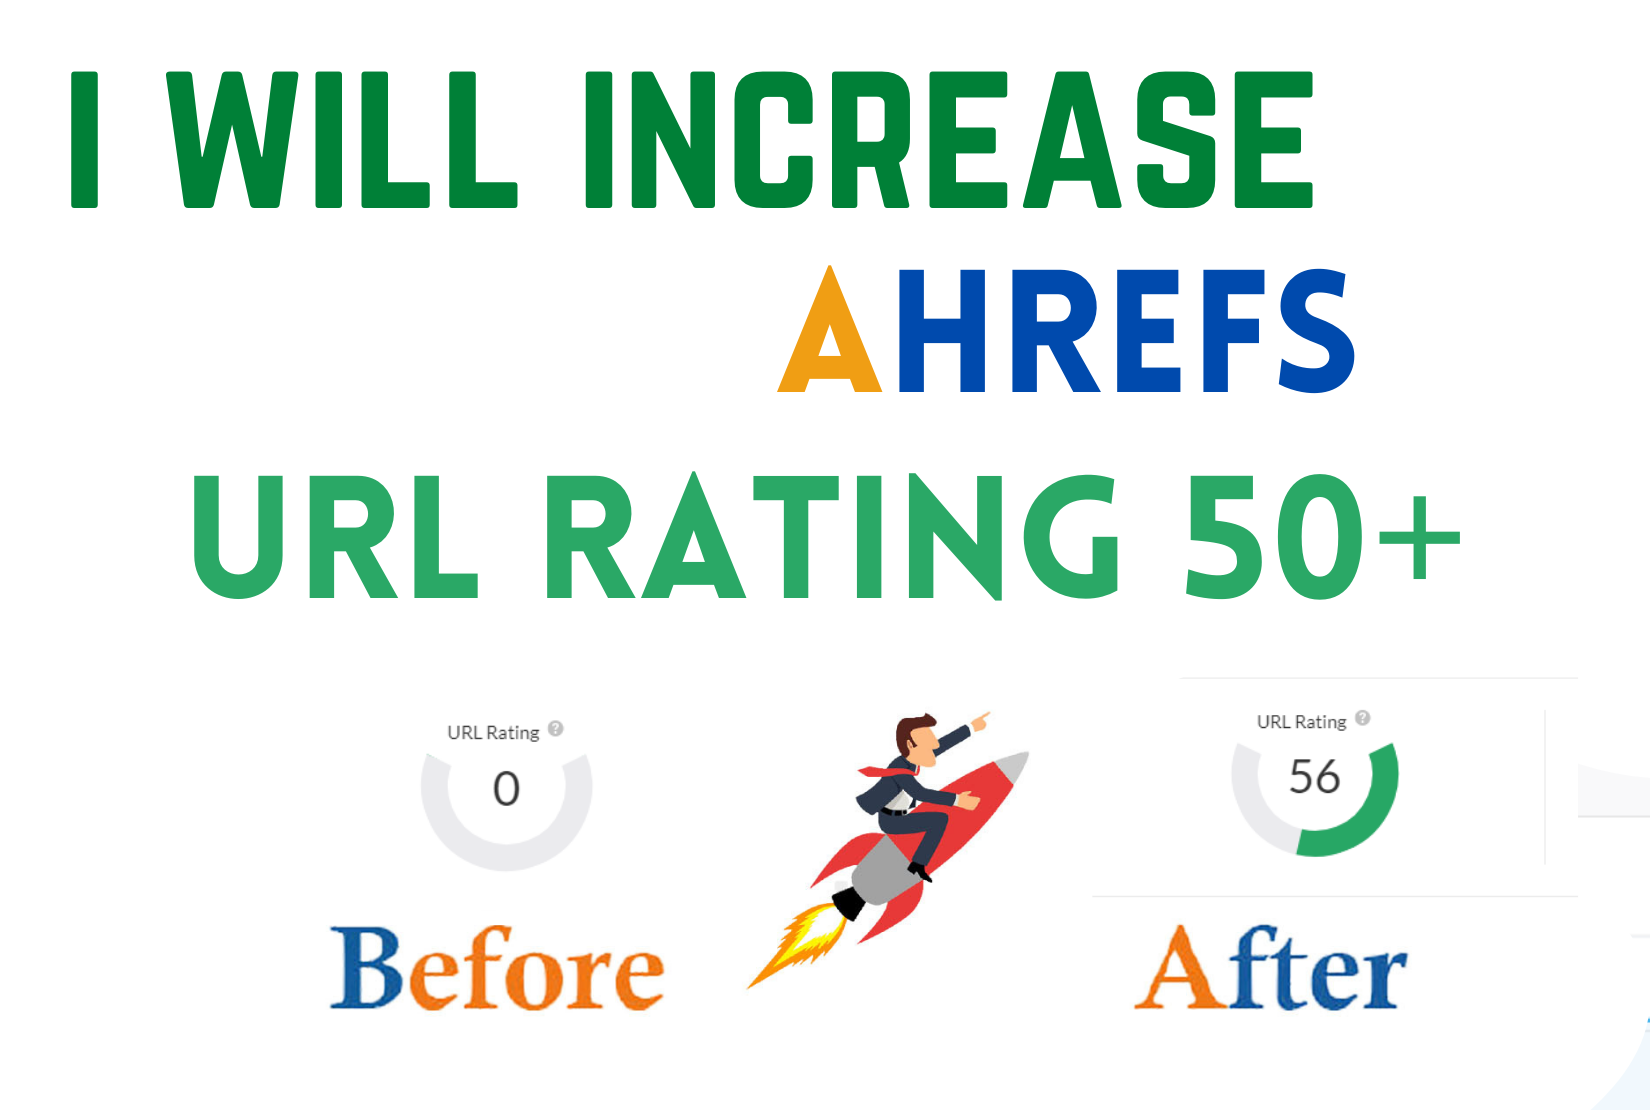 I will increase url rating ahrefs to 50+